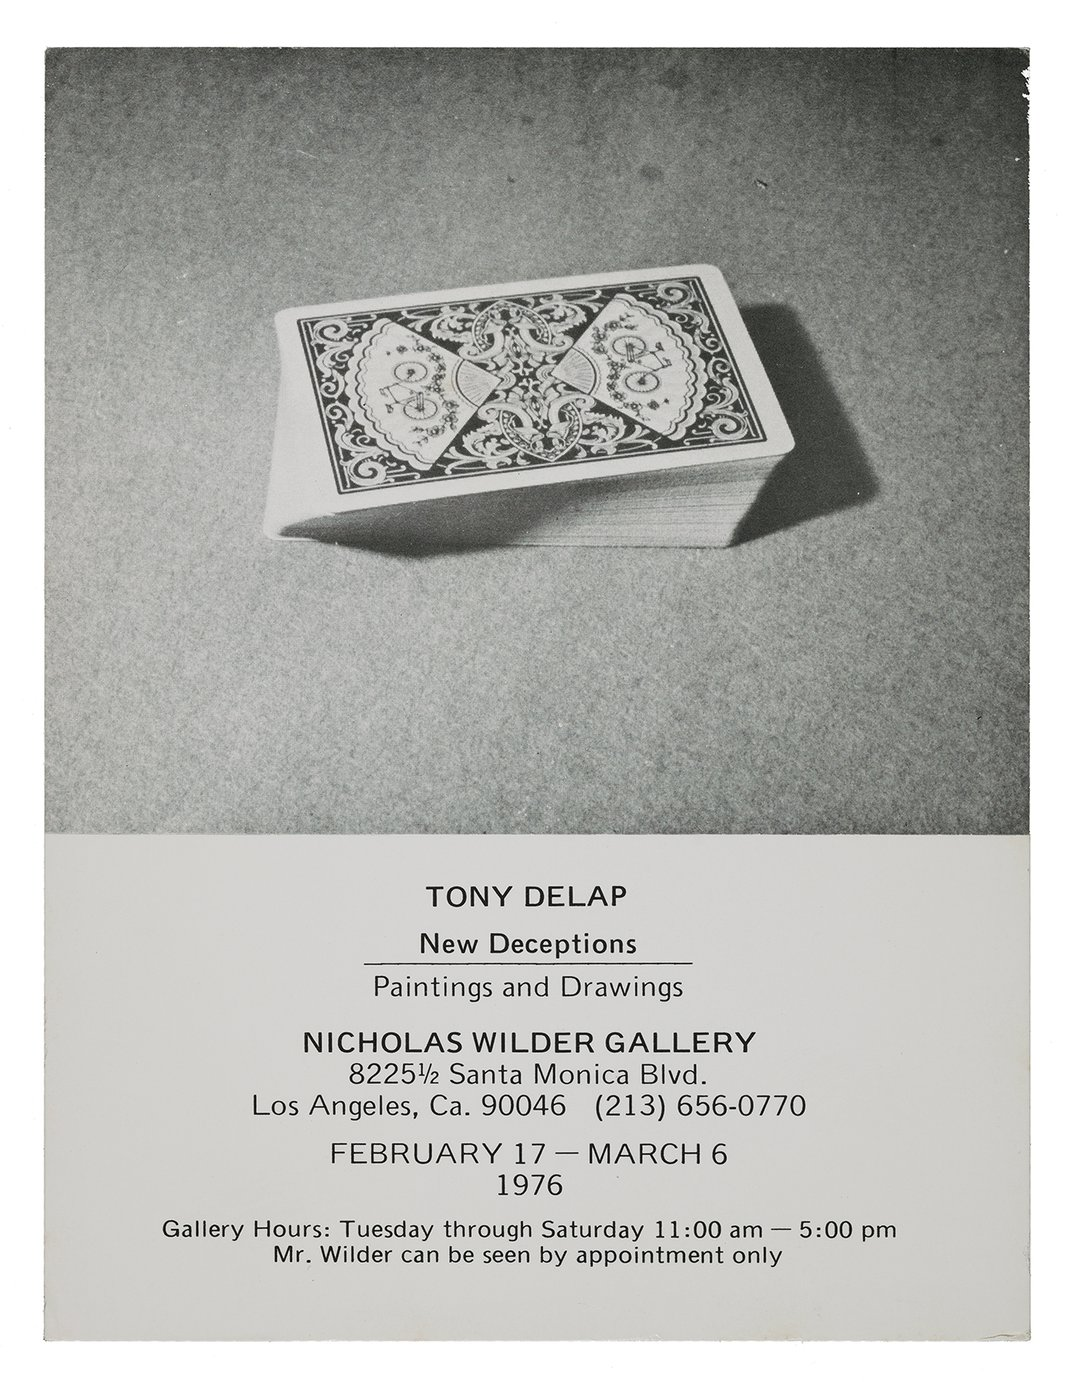 Announcement for the exhibition Tony DeLap, New Deceptions